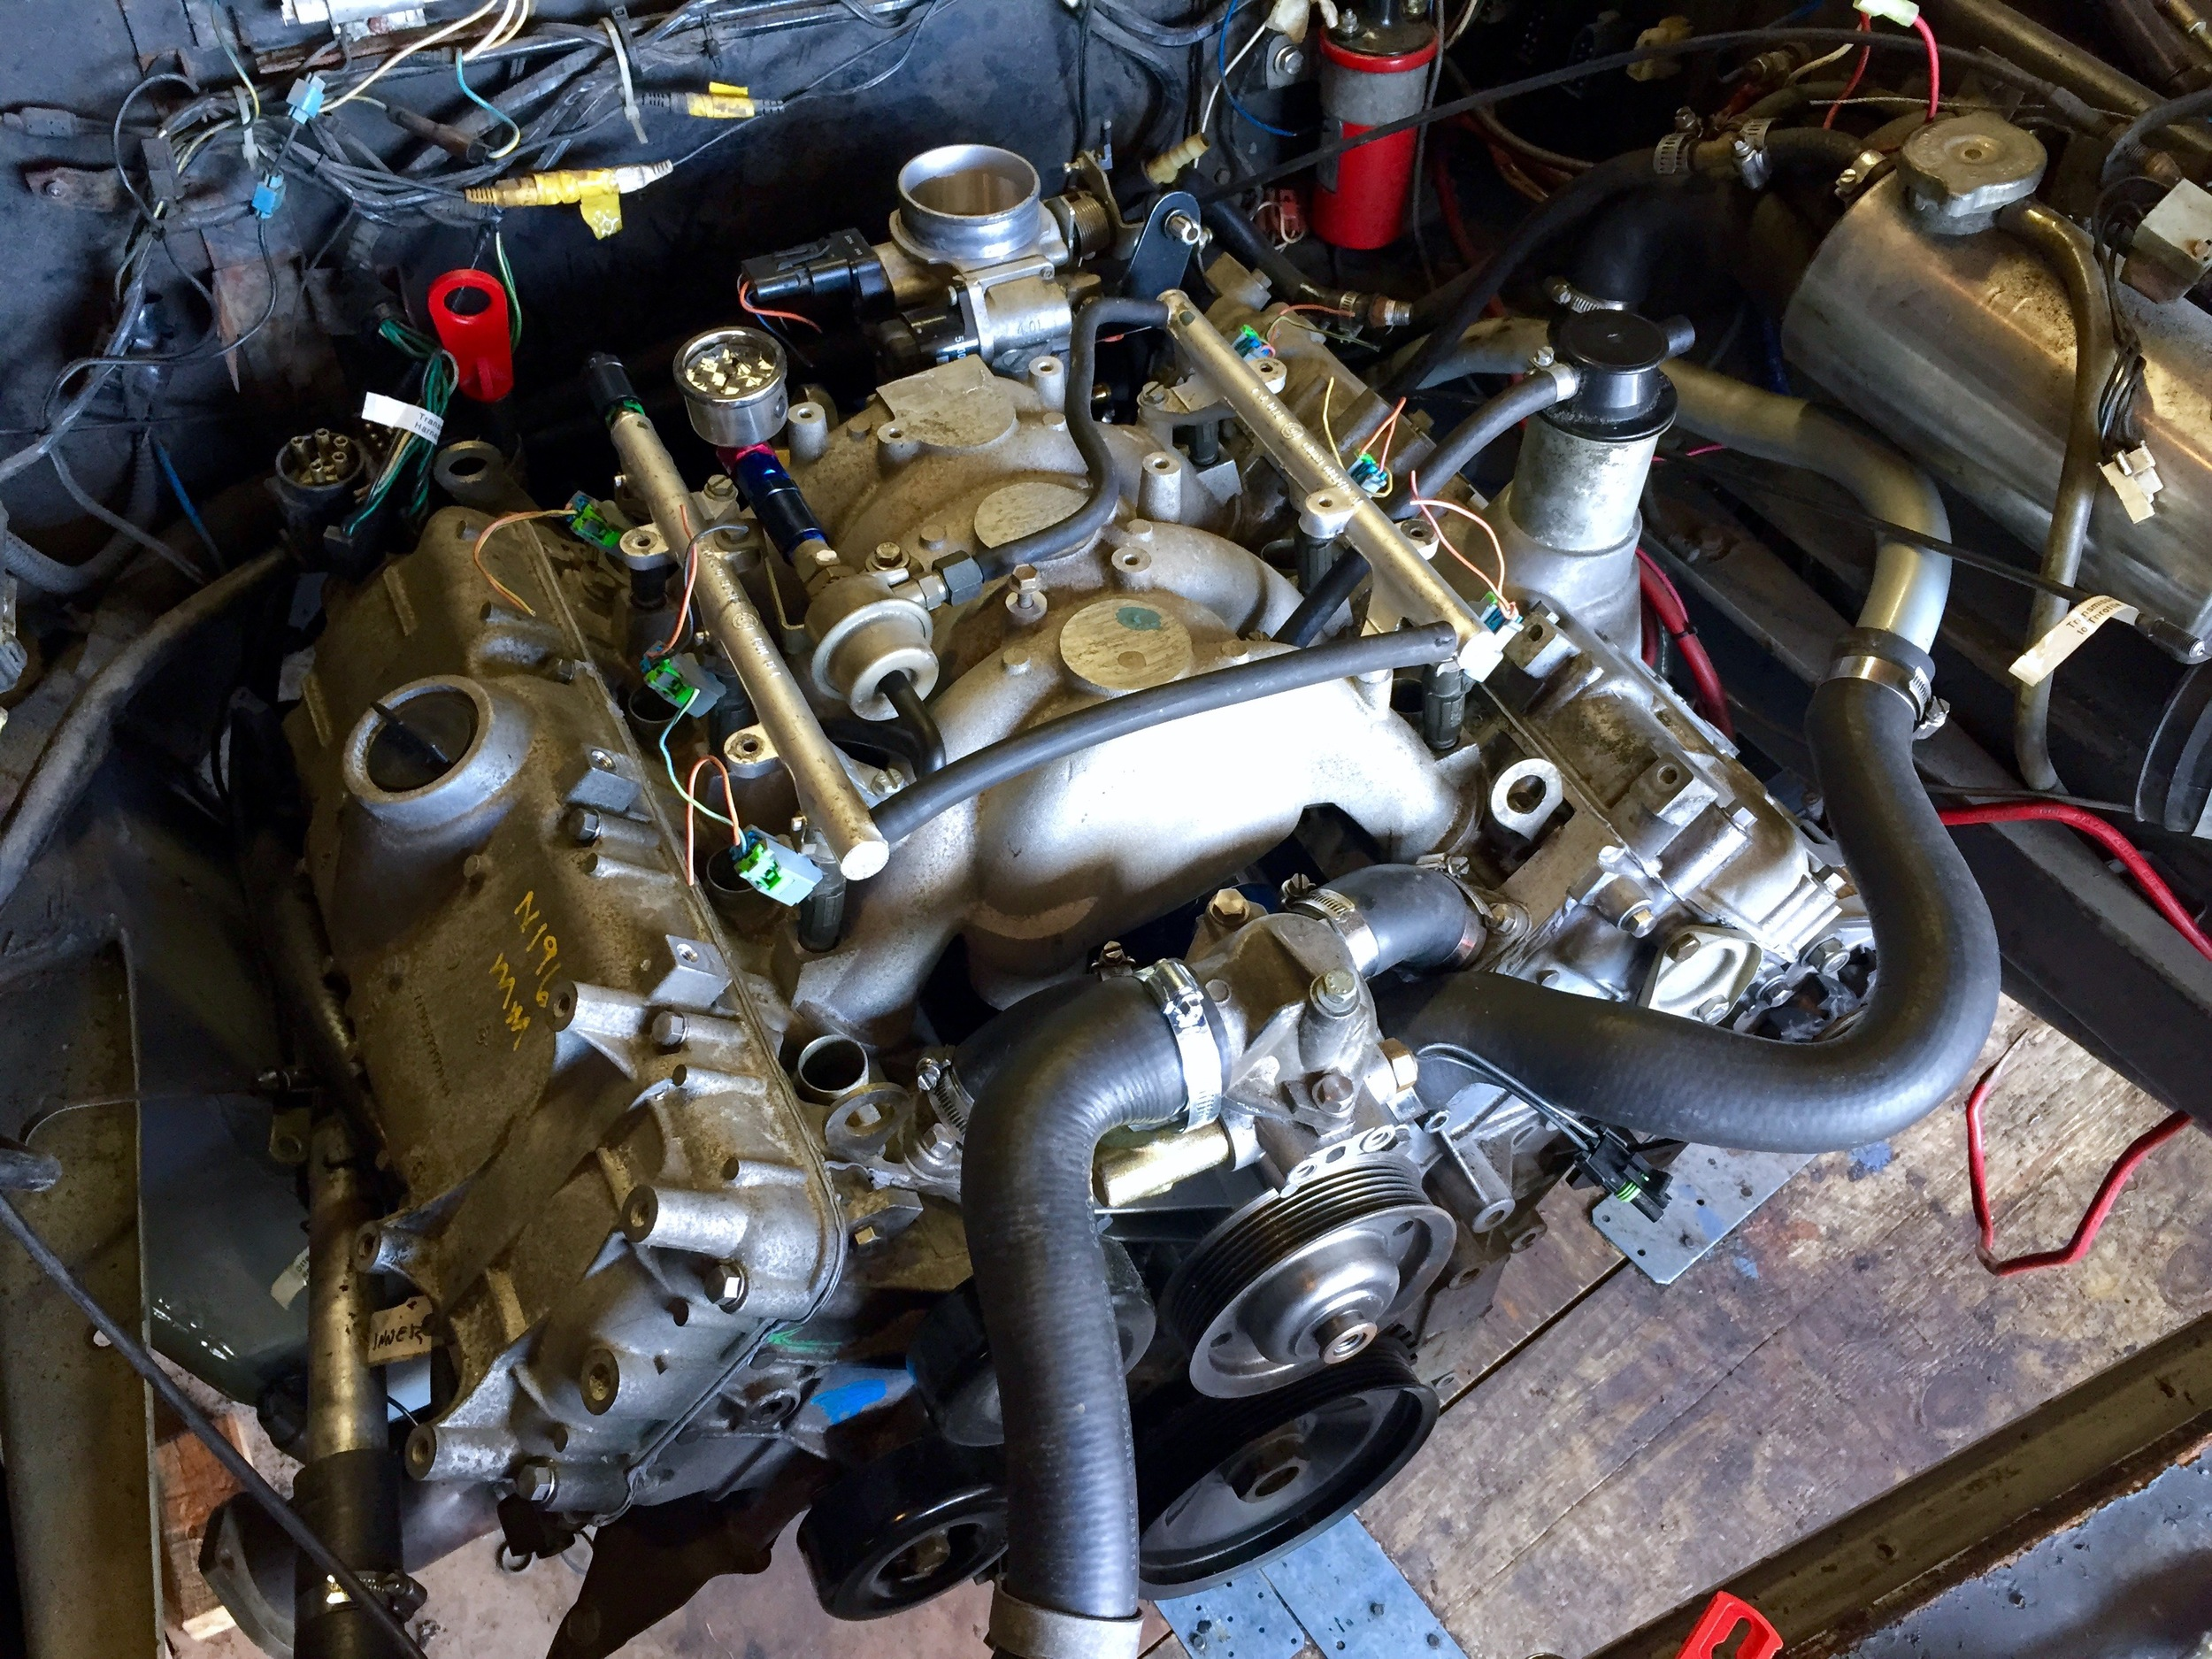 The manifold fully installed on the engine.